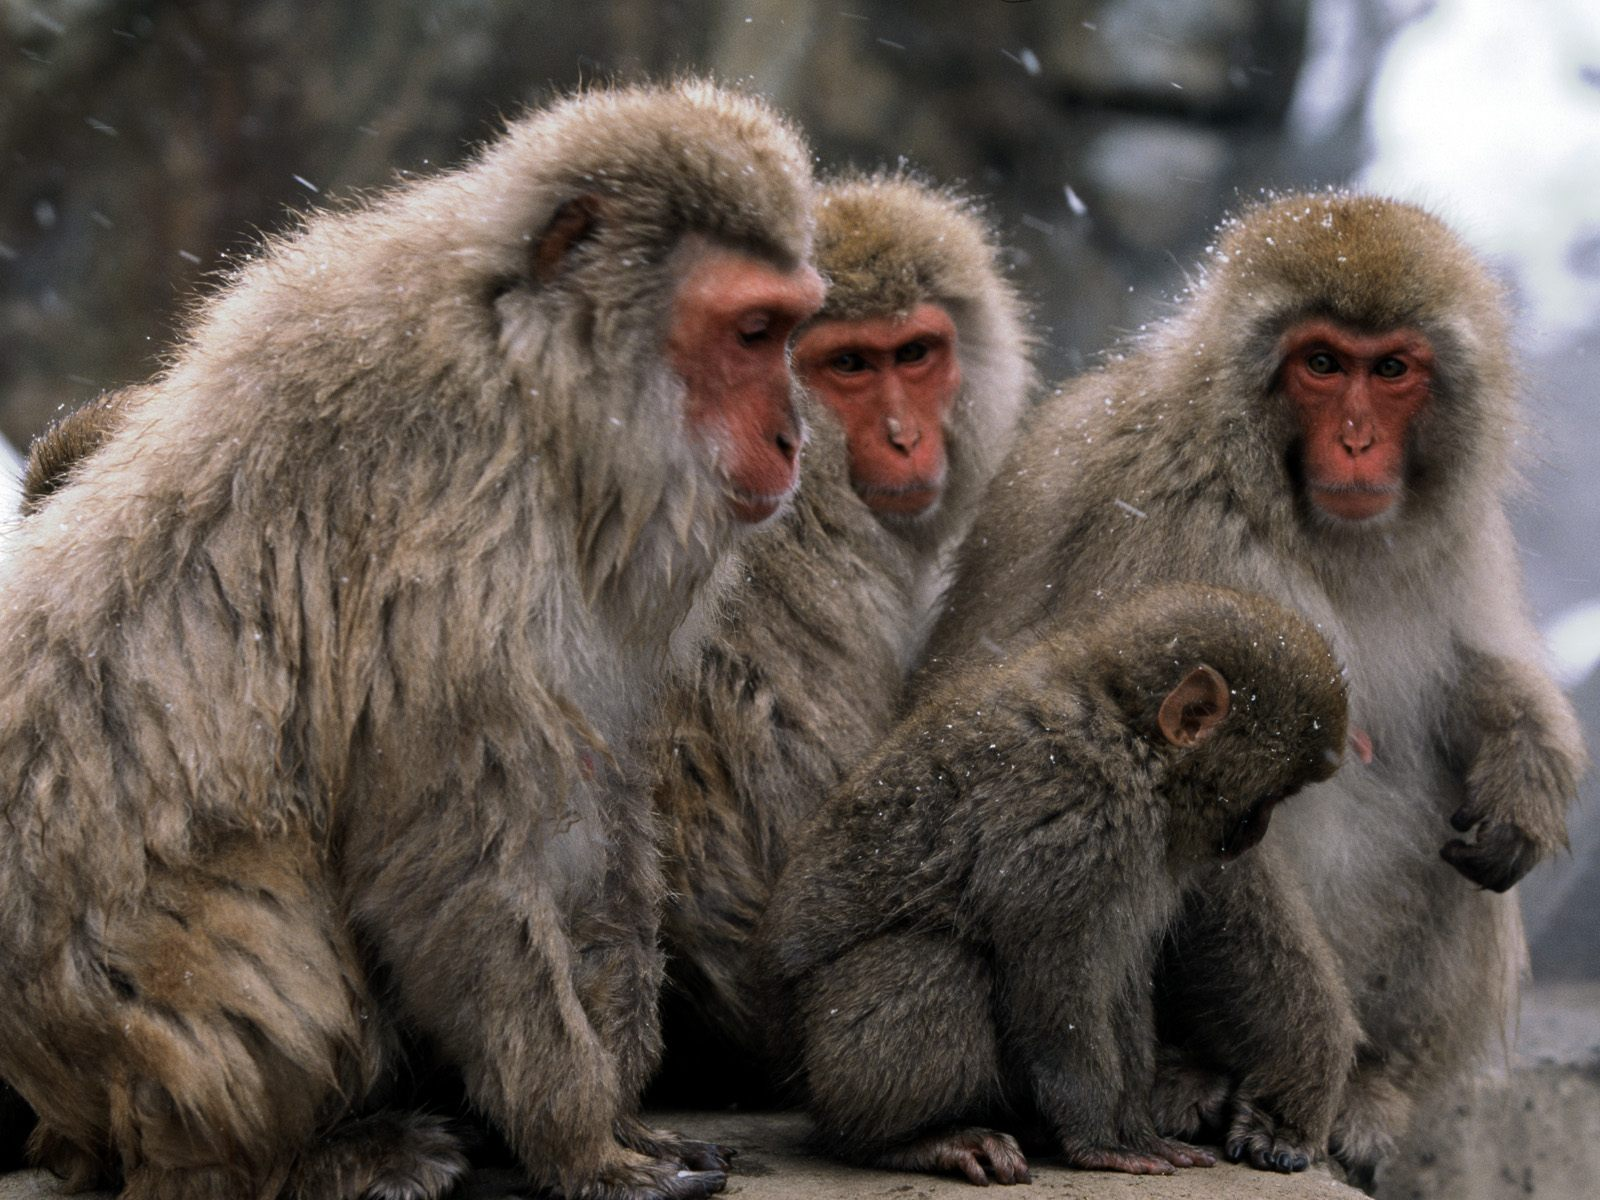 Monkey Wallpaper Pack 1 1600x1200 Wallpapers Pictures